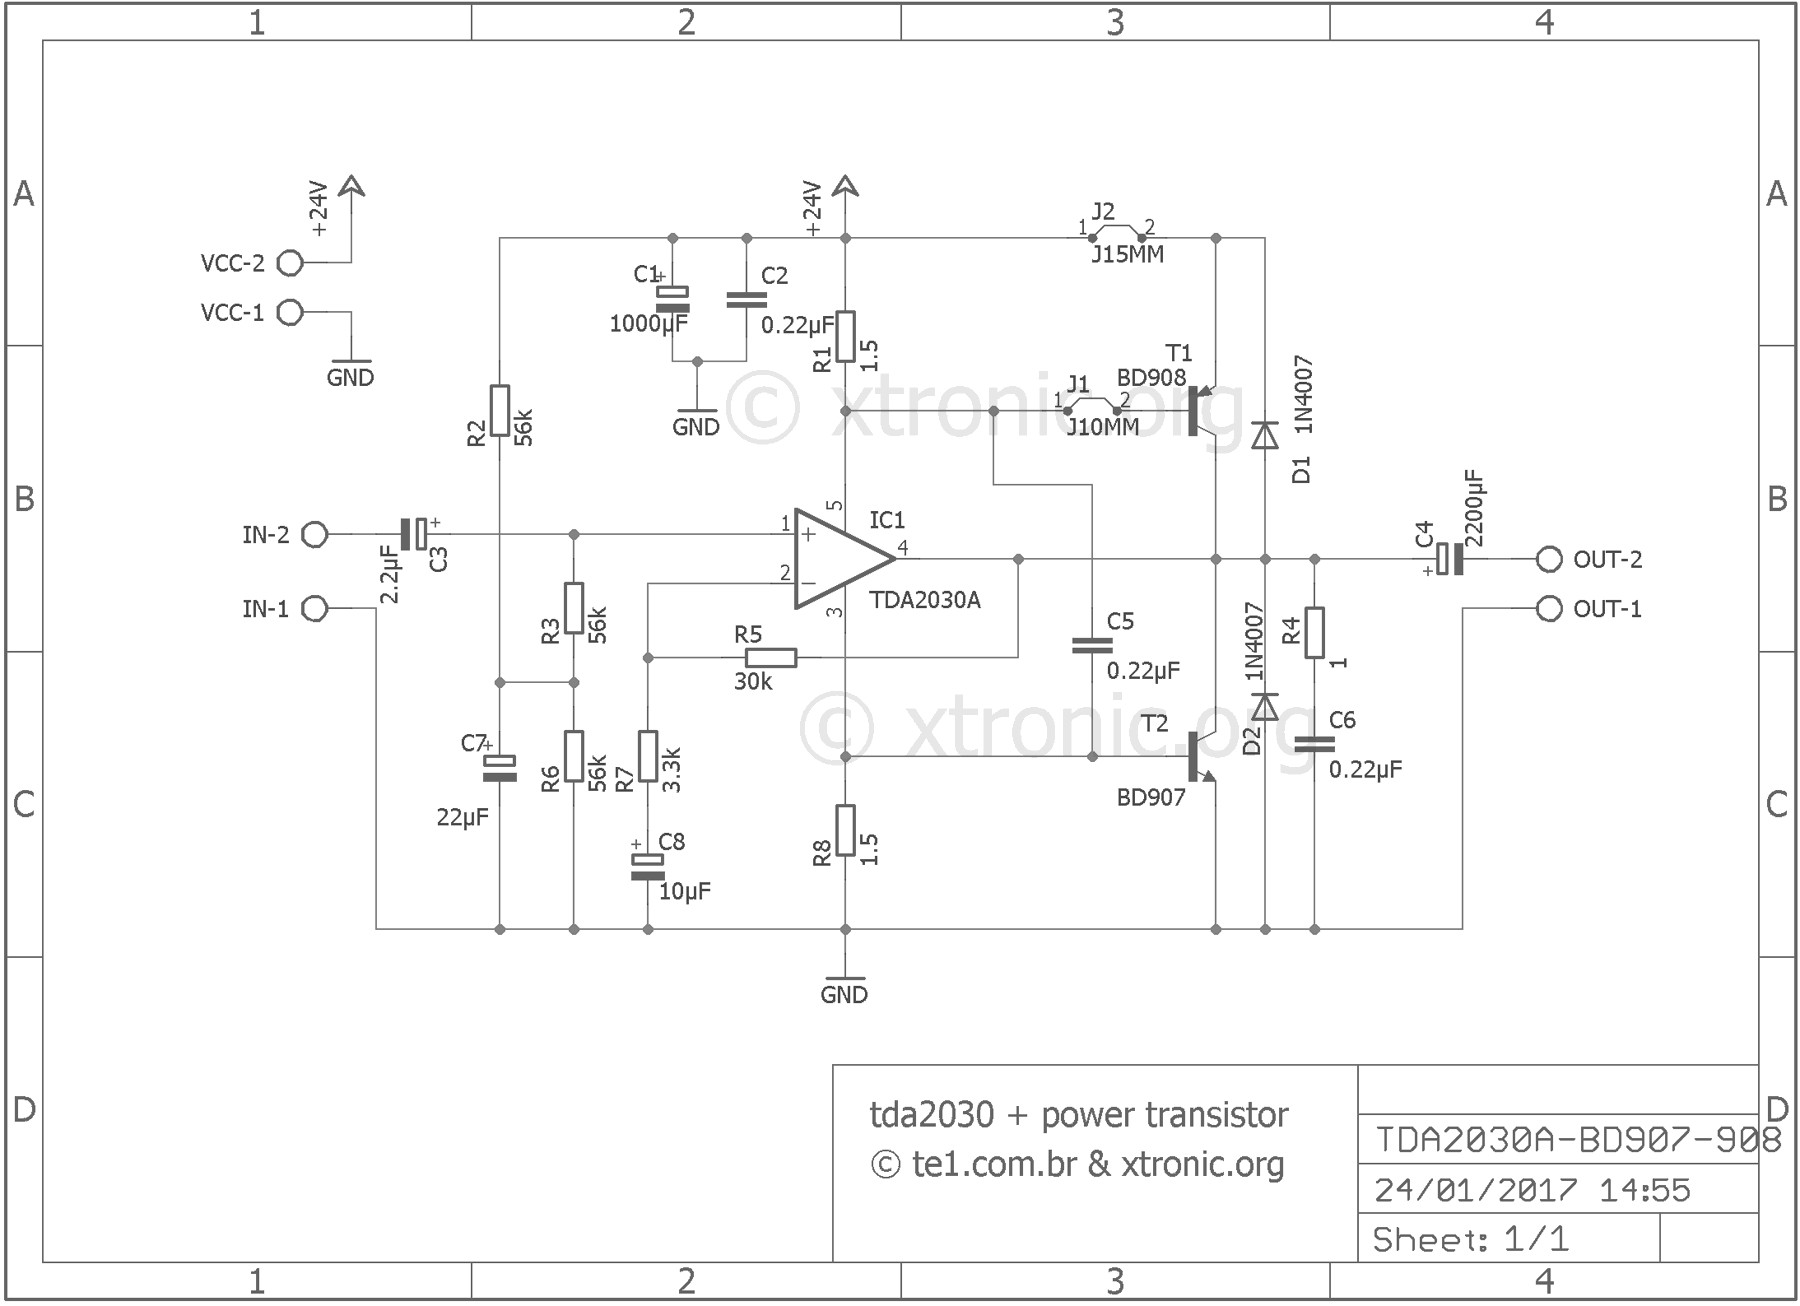 Pin Layout Tda 2040 Ev 7063] Hifi Audio Amplifier Circuit Based Tda2050 Audio Of Pin Layout Tda 2040